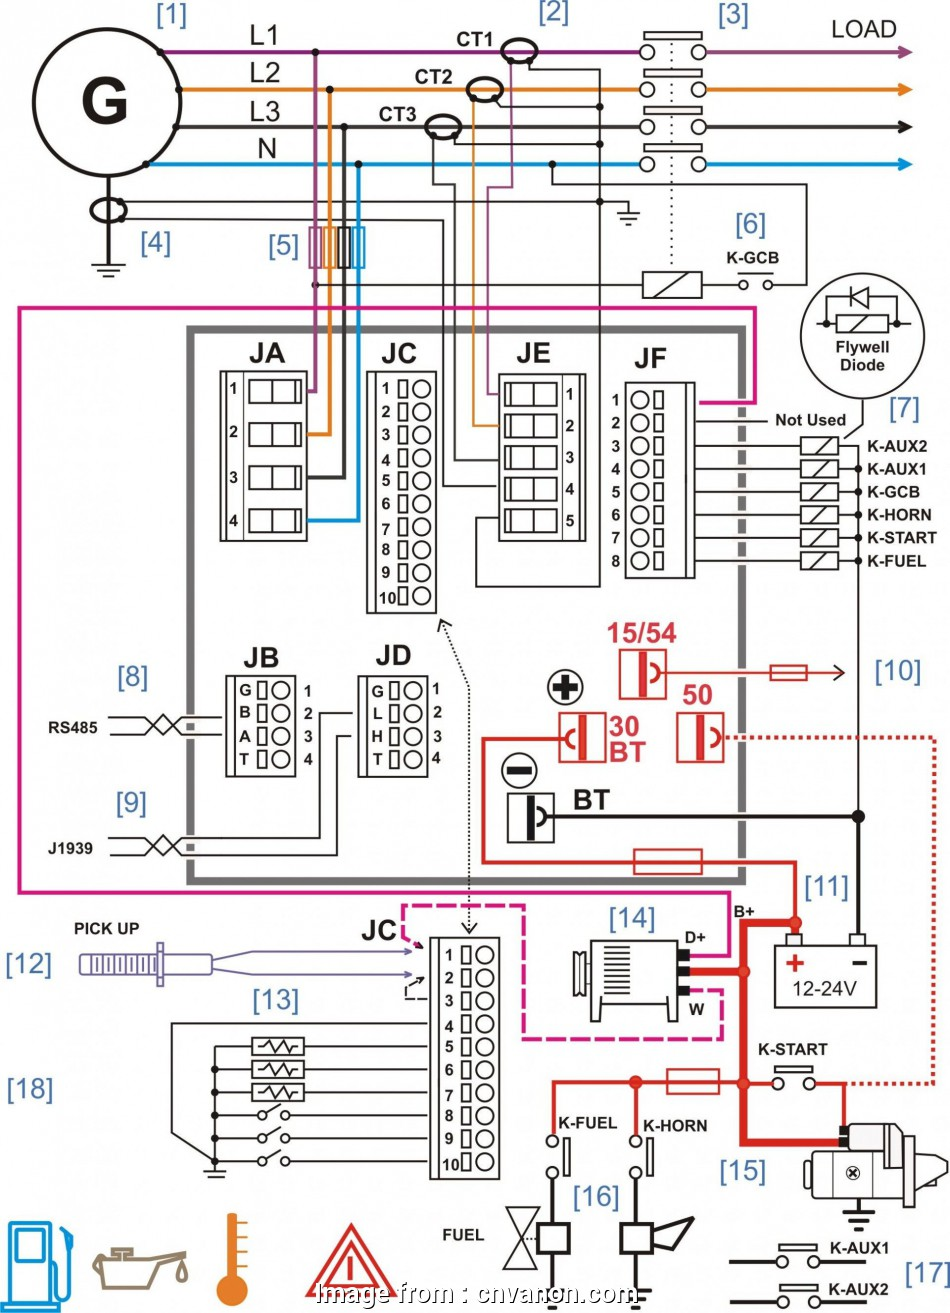 electrical panel board wiring diagram Distribution Board Connection Wiring Diagram Fresh Electrical Panel Board Wiring Diagram 15 Professional Electrical Panel Board Wiring Diagram Galleries